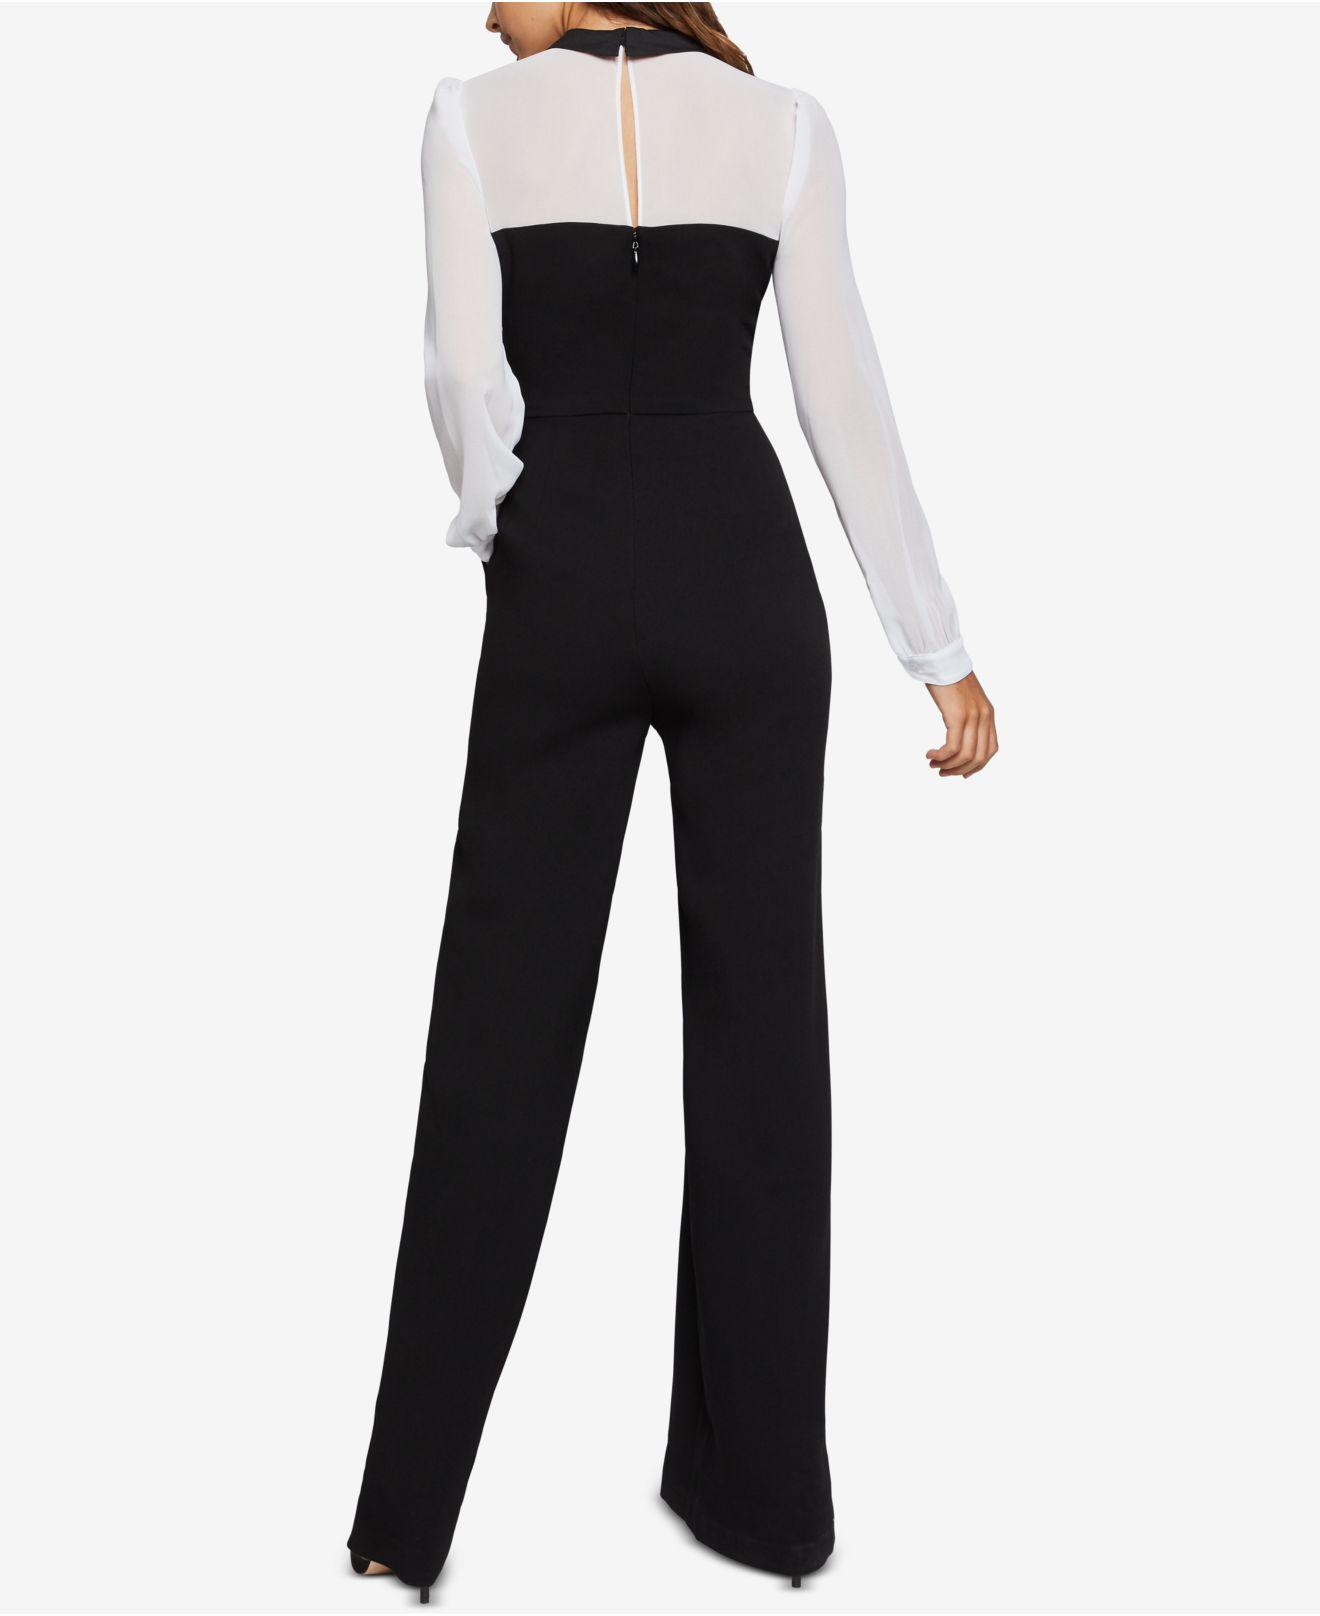 401b2c02b236 Lyst - BCBGeneration Colorblocked Layered-look Jumpsuit in Black - Save 50%